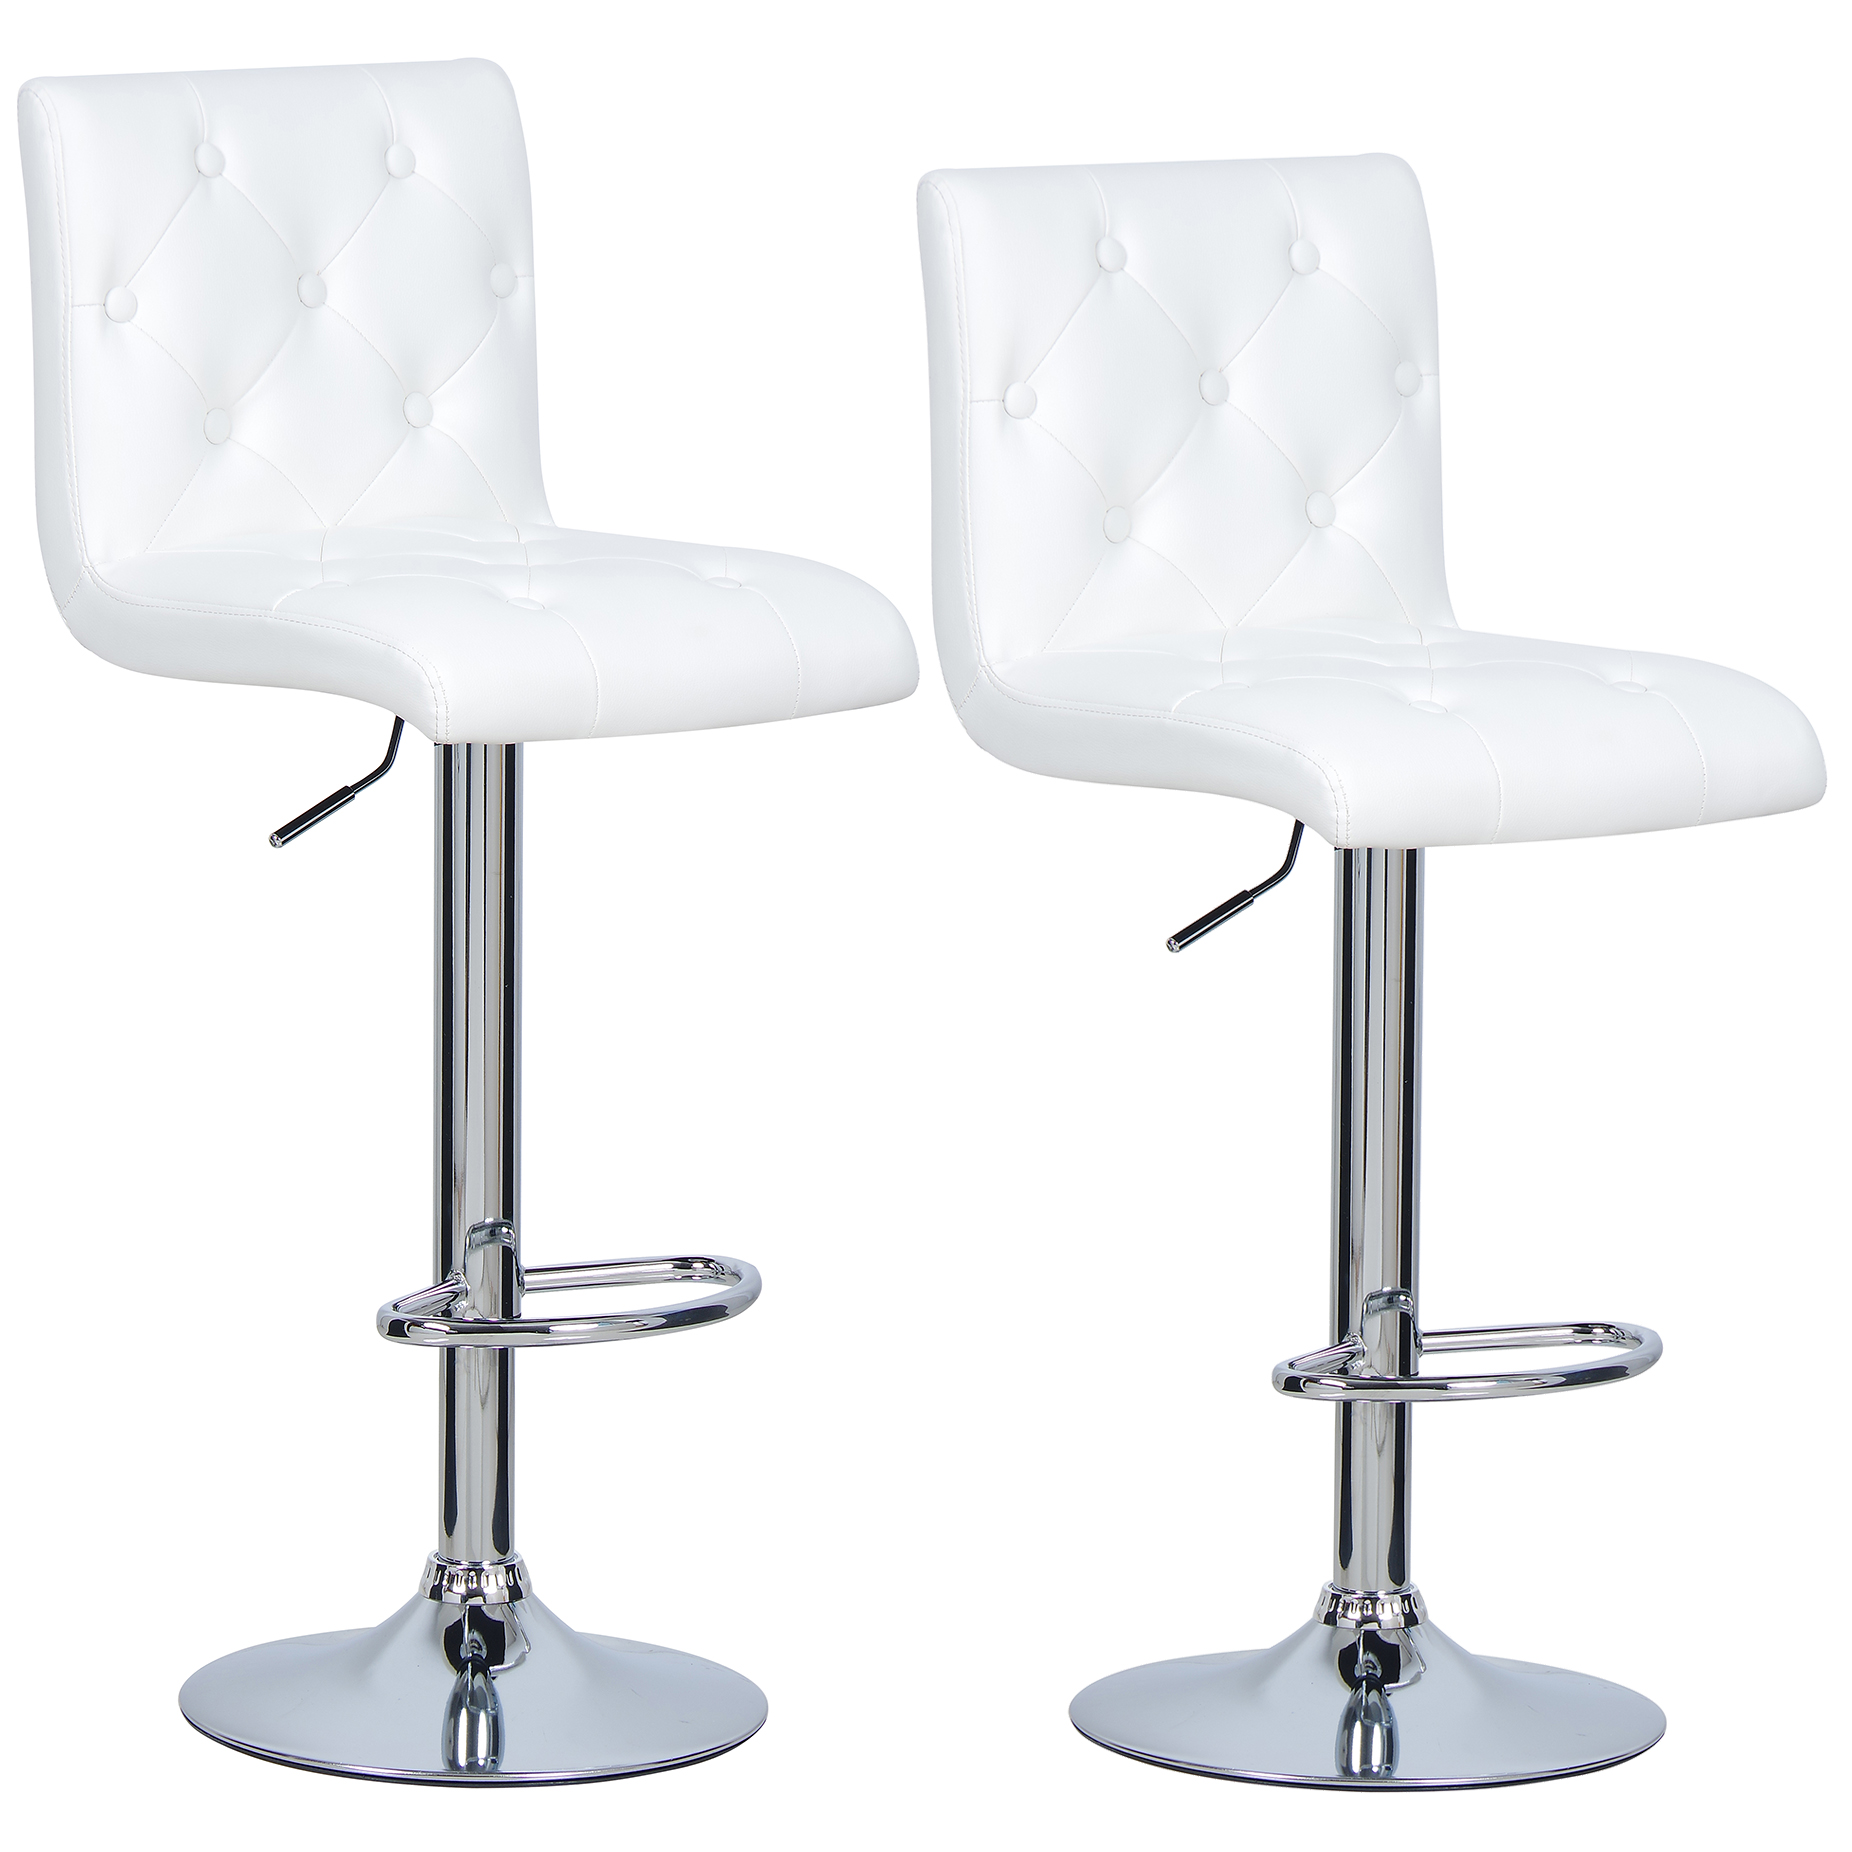 1 2 X Bar Stools Faux Leather Kitchen Chrome Stool Breakfast Chair White U012 Ebay